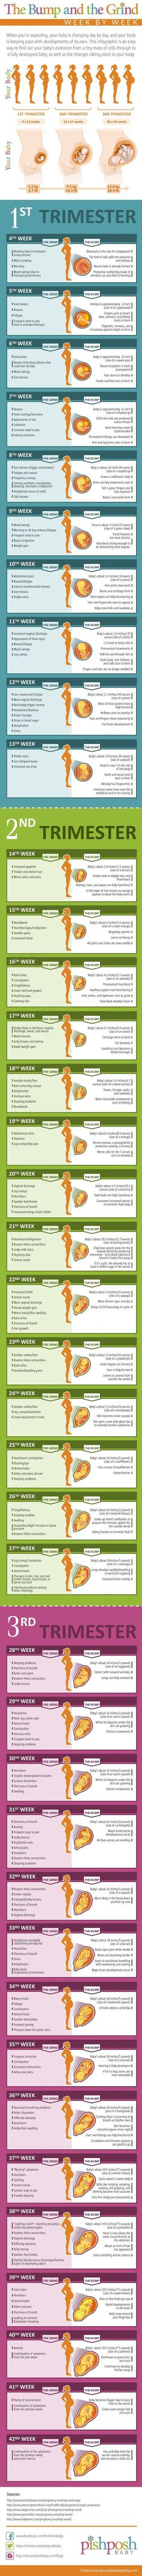 Pregnancy Decisions, Maternity, Trimester, Advice and Tips